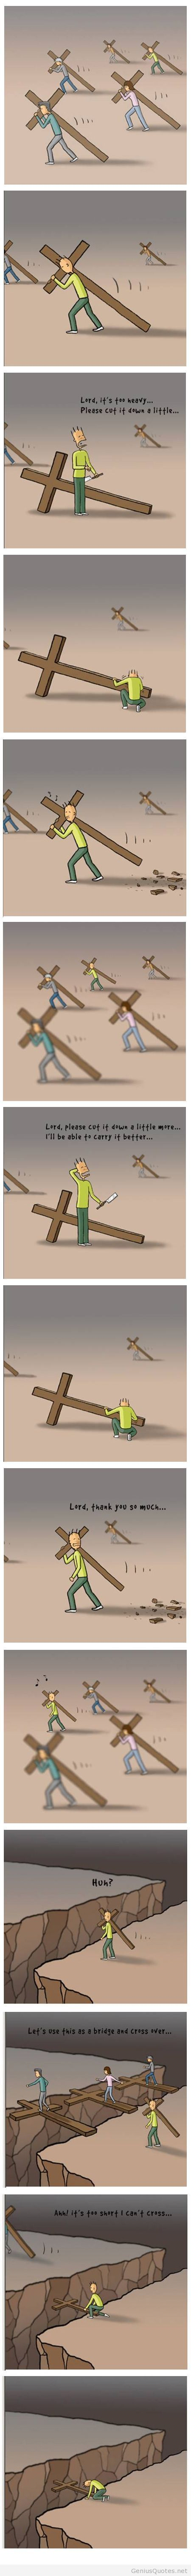 Sometimes we complain about the cross we bear